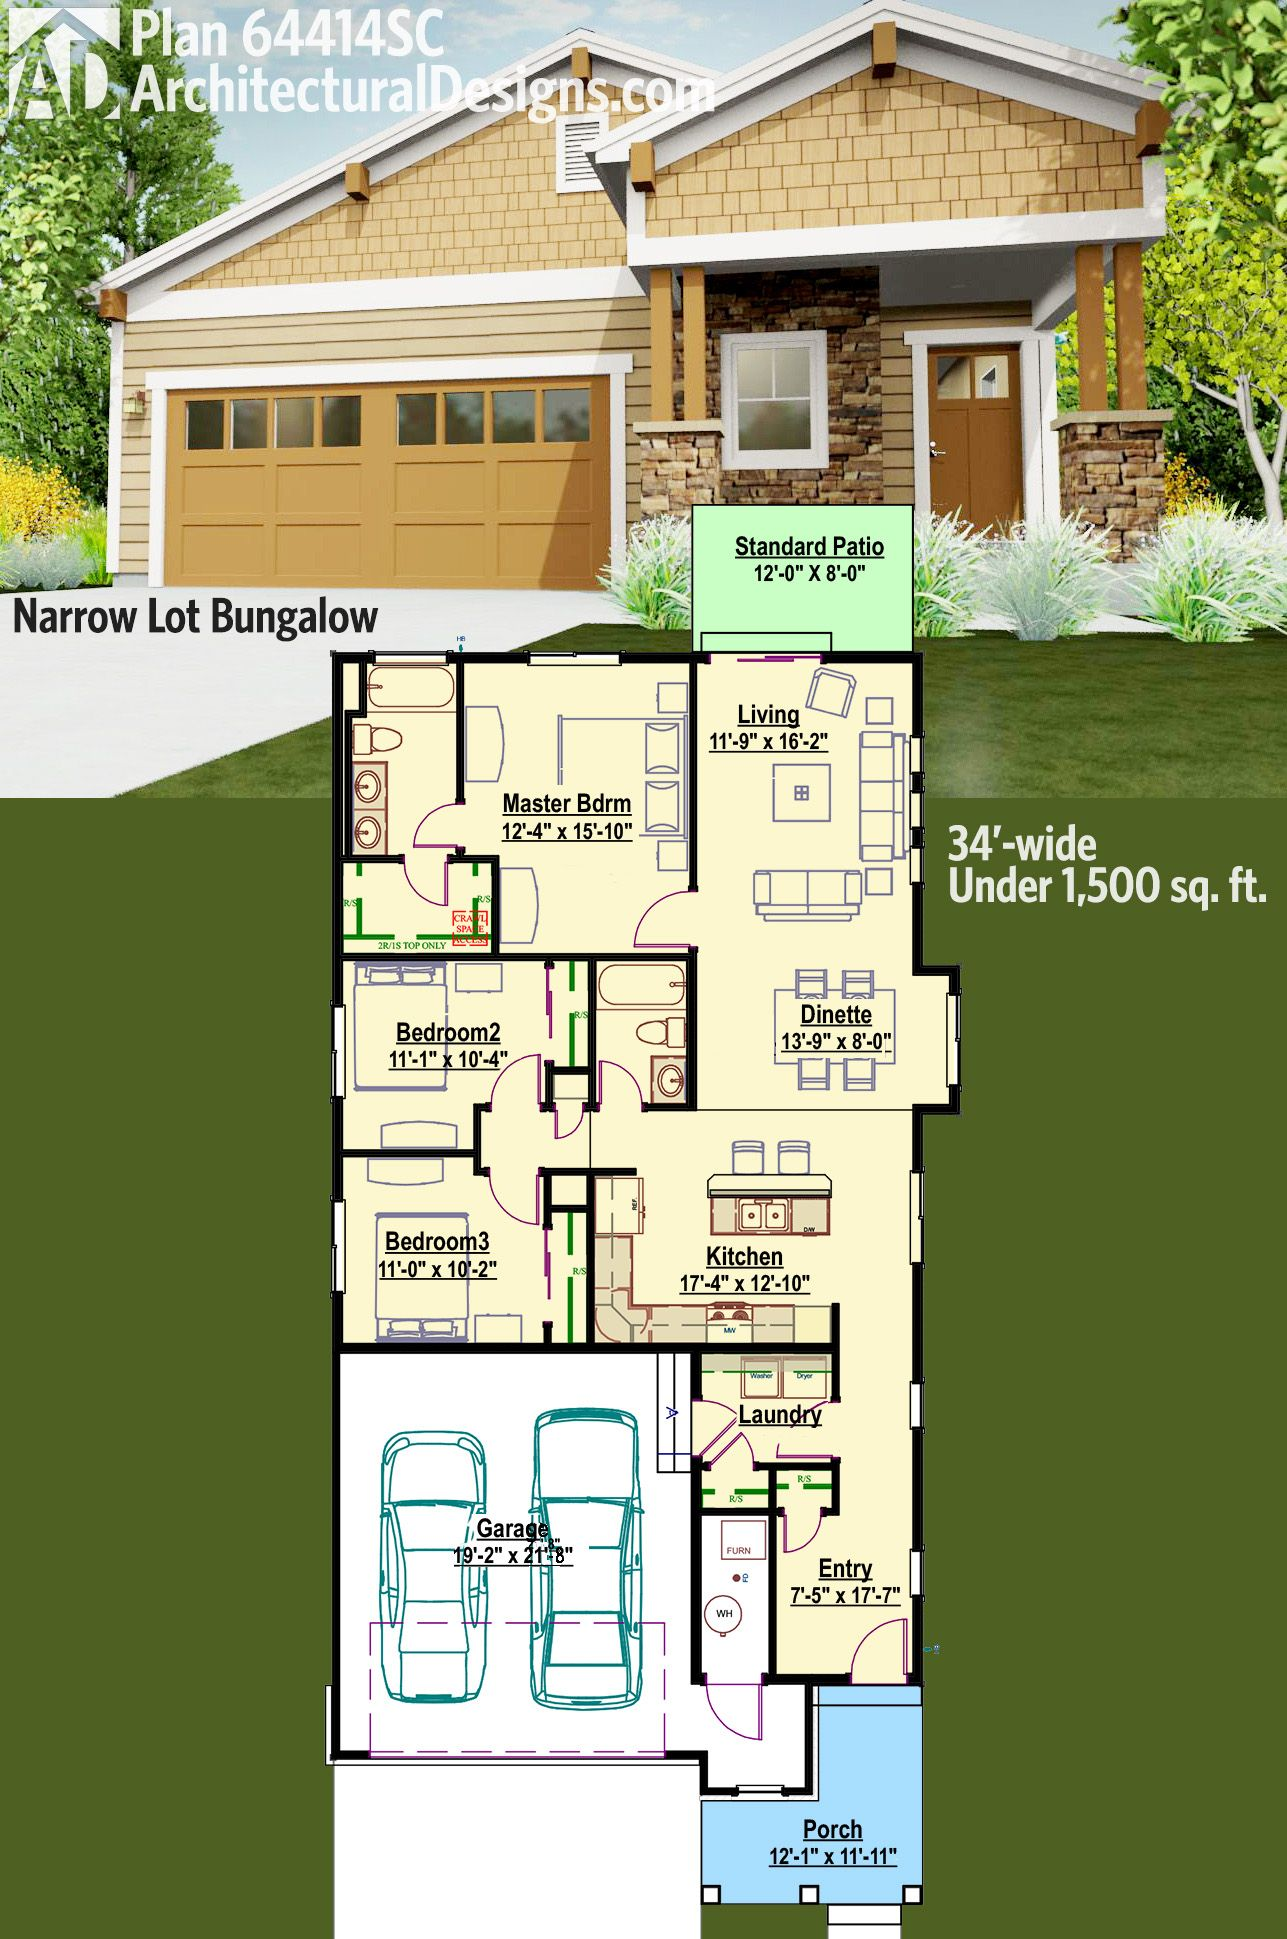 Architectural Designs Narrow Lot Bungalow HousePlan 64414SC